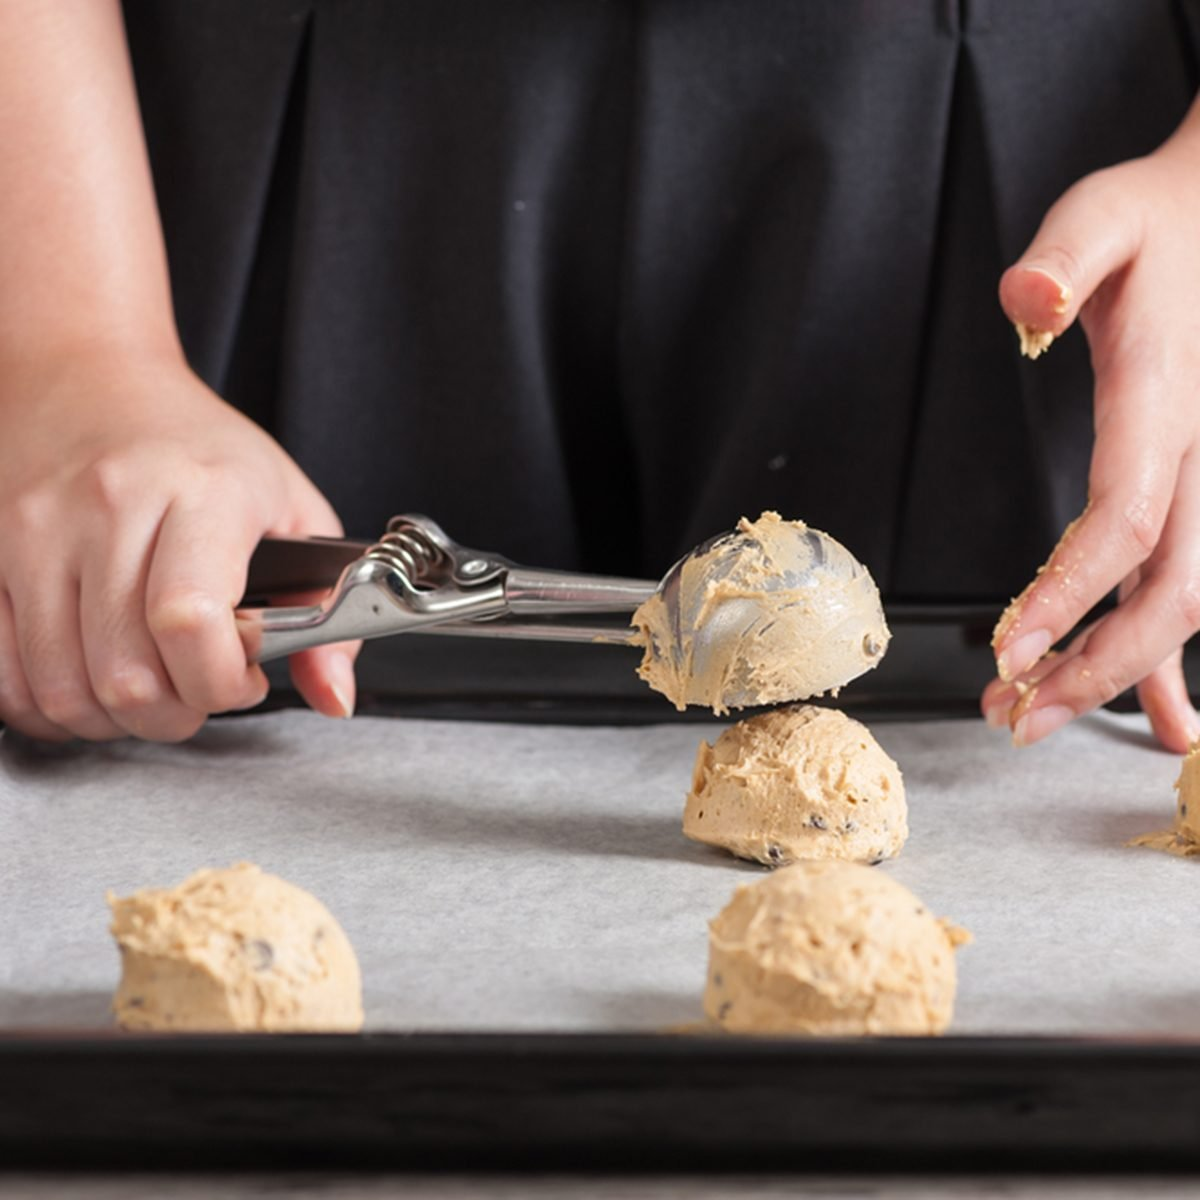 Putting mixed cookie ingredients into tray